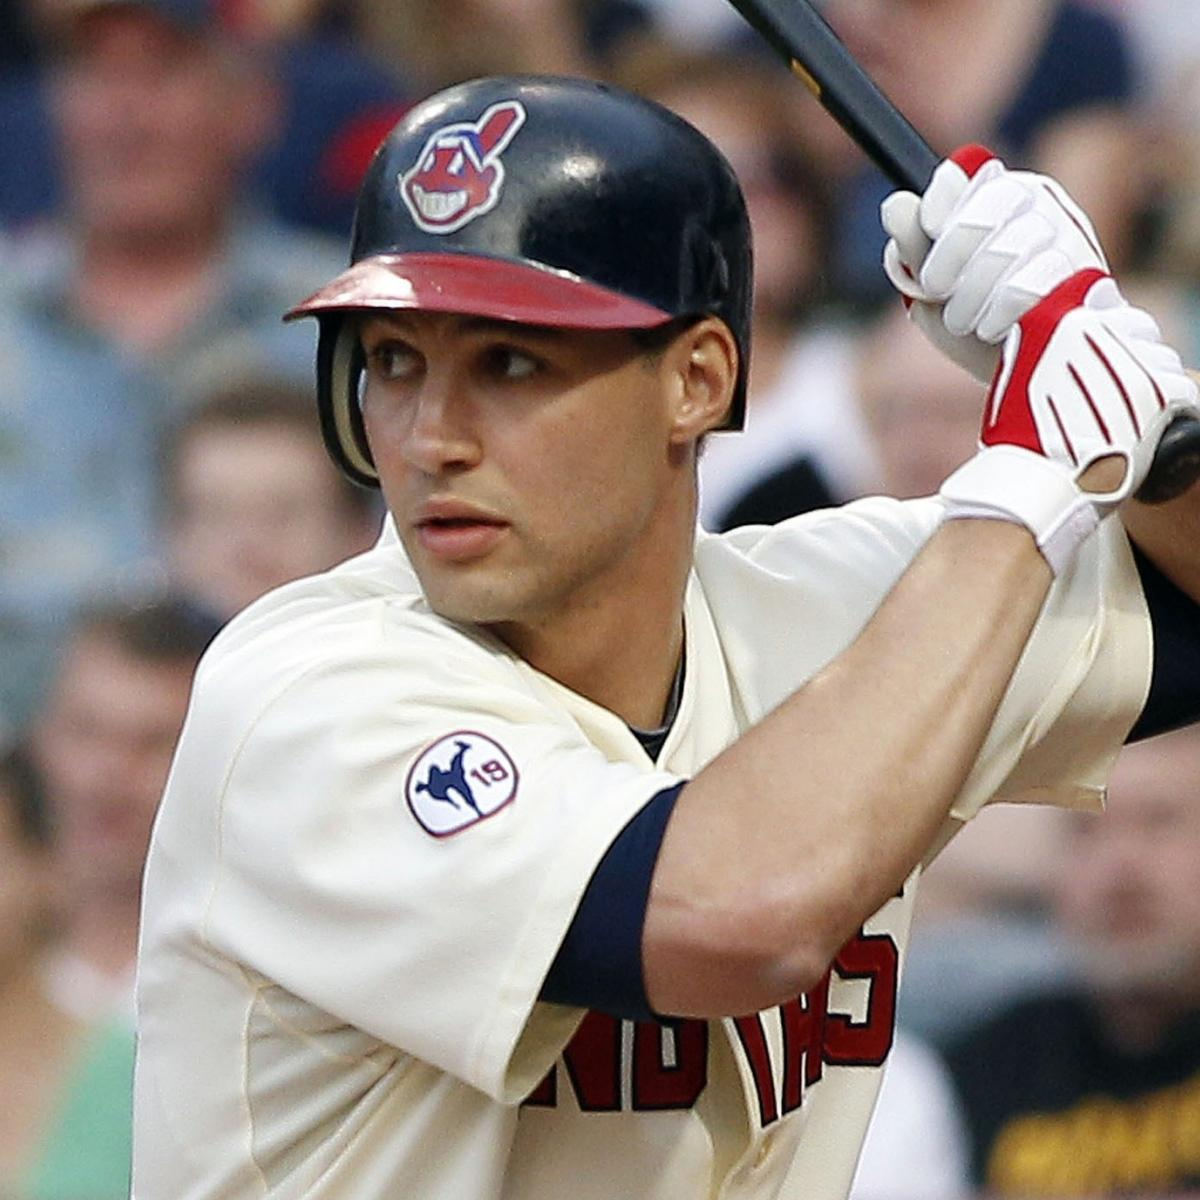 Grady sizemore mets rumors why hes perfect risk reward bet for grady sizemore mets rumors why hes perfect risk reward bet for mets bleacher report latest news videos and highlights kristyandbryce Gallery